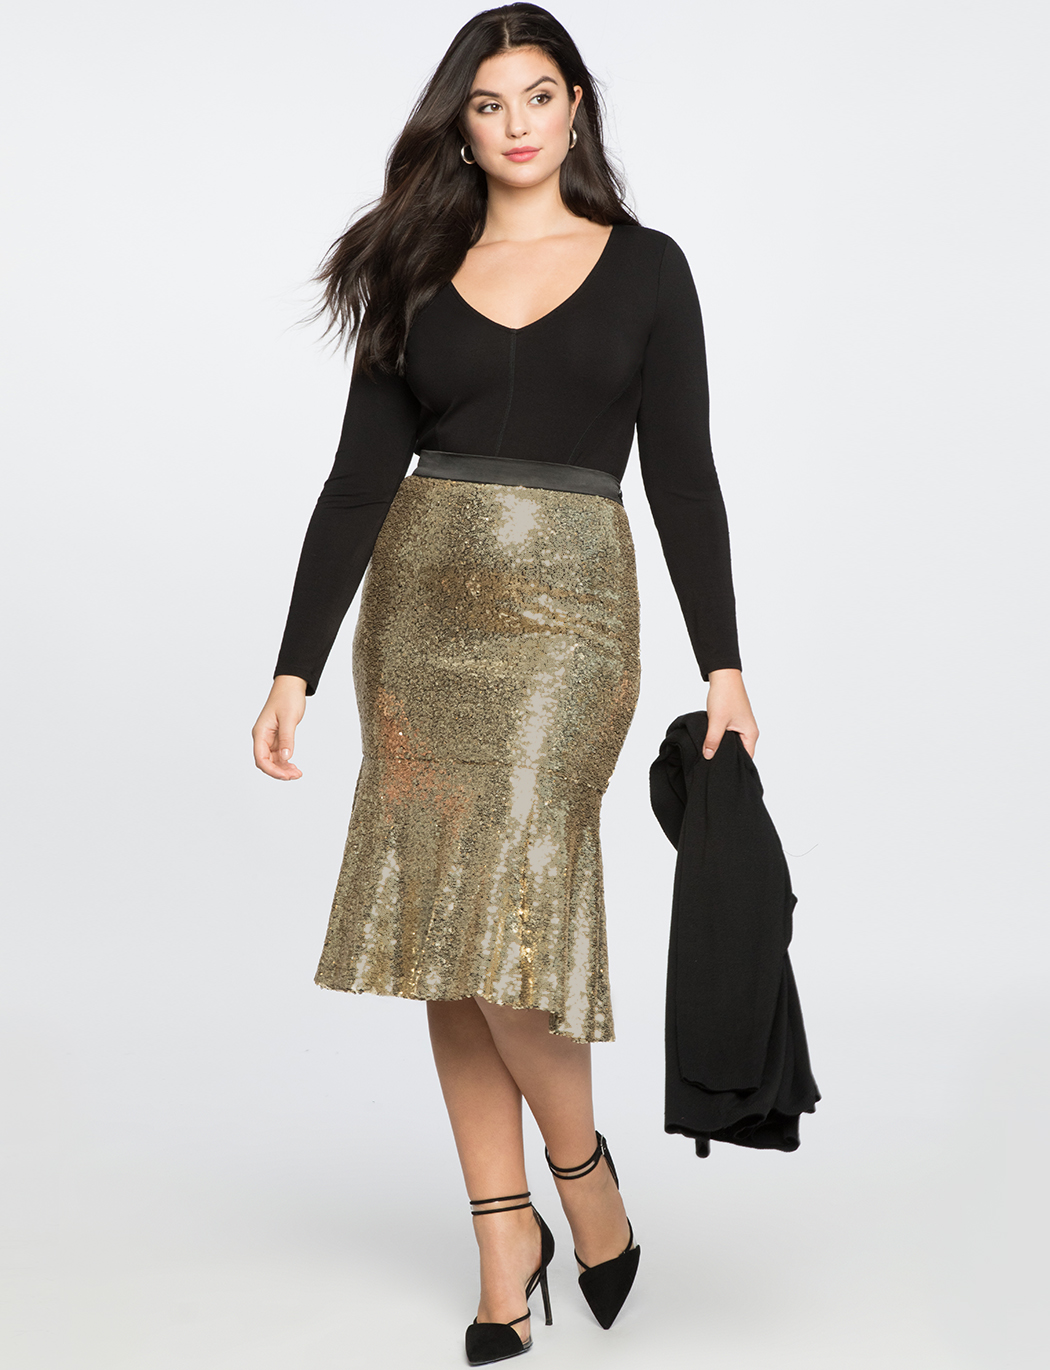 99109fcd26 Sequin Trumpet Midi Skirt | Women's Plus Size Skirts | ELOQUII